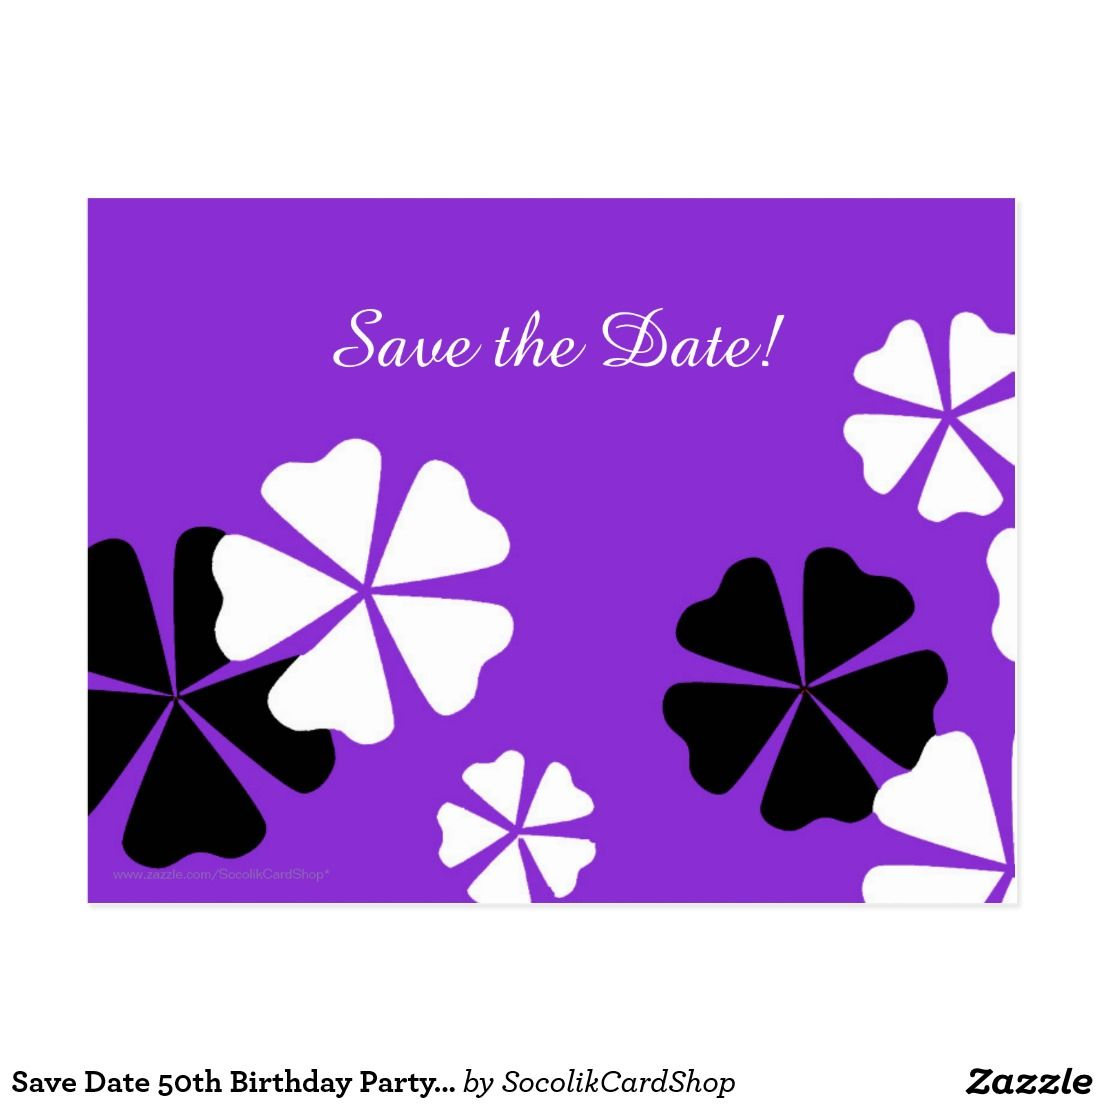 save date 50th birthday party purple announcement postcard